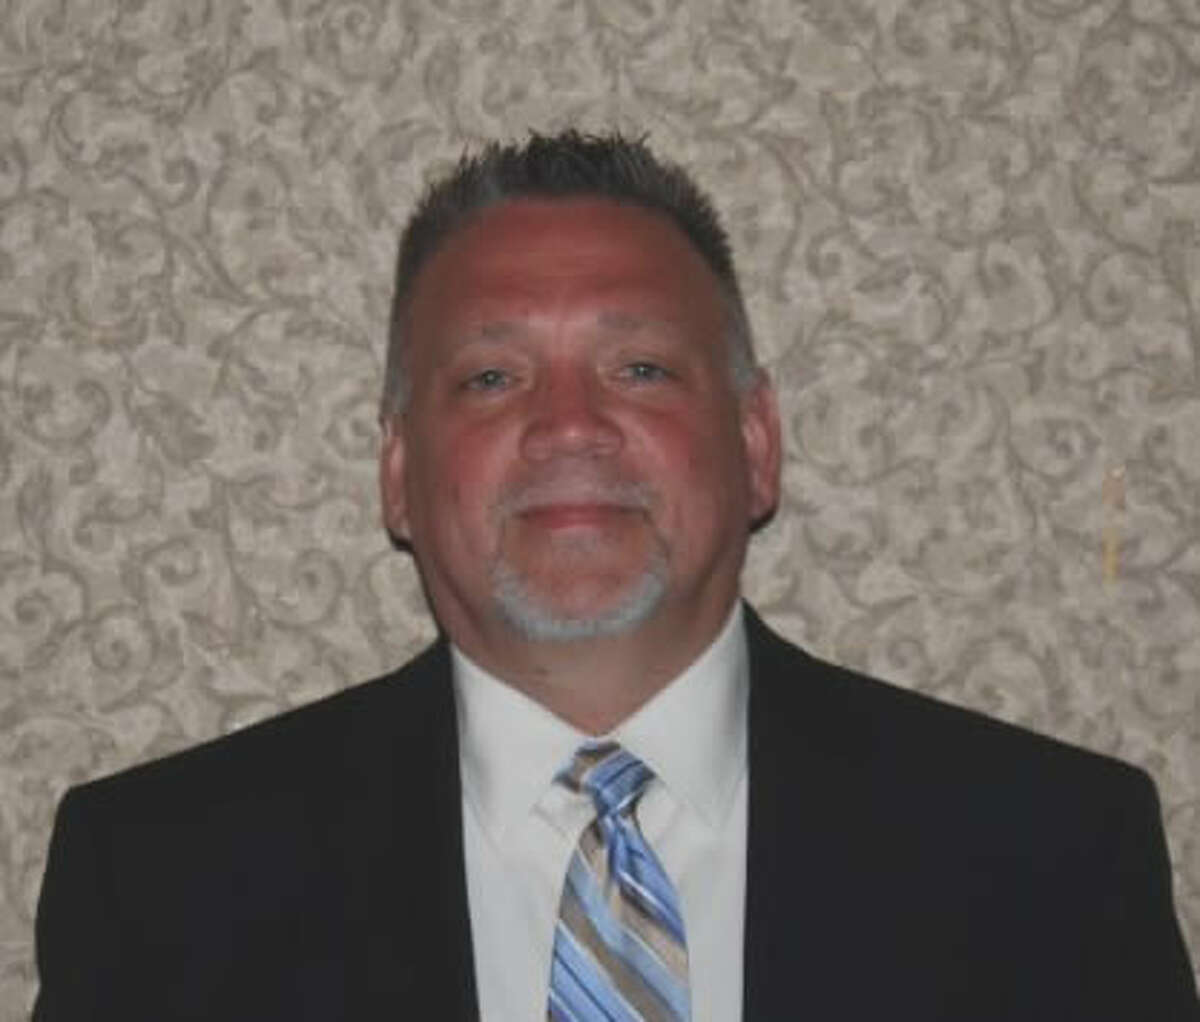 Former Clifton Park resident Dennis Hacker, a candidate for the U.S. Bowling Congress board of directors. (Photo courtesy of Dennis Hacker)